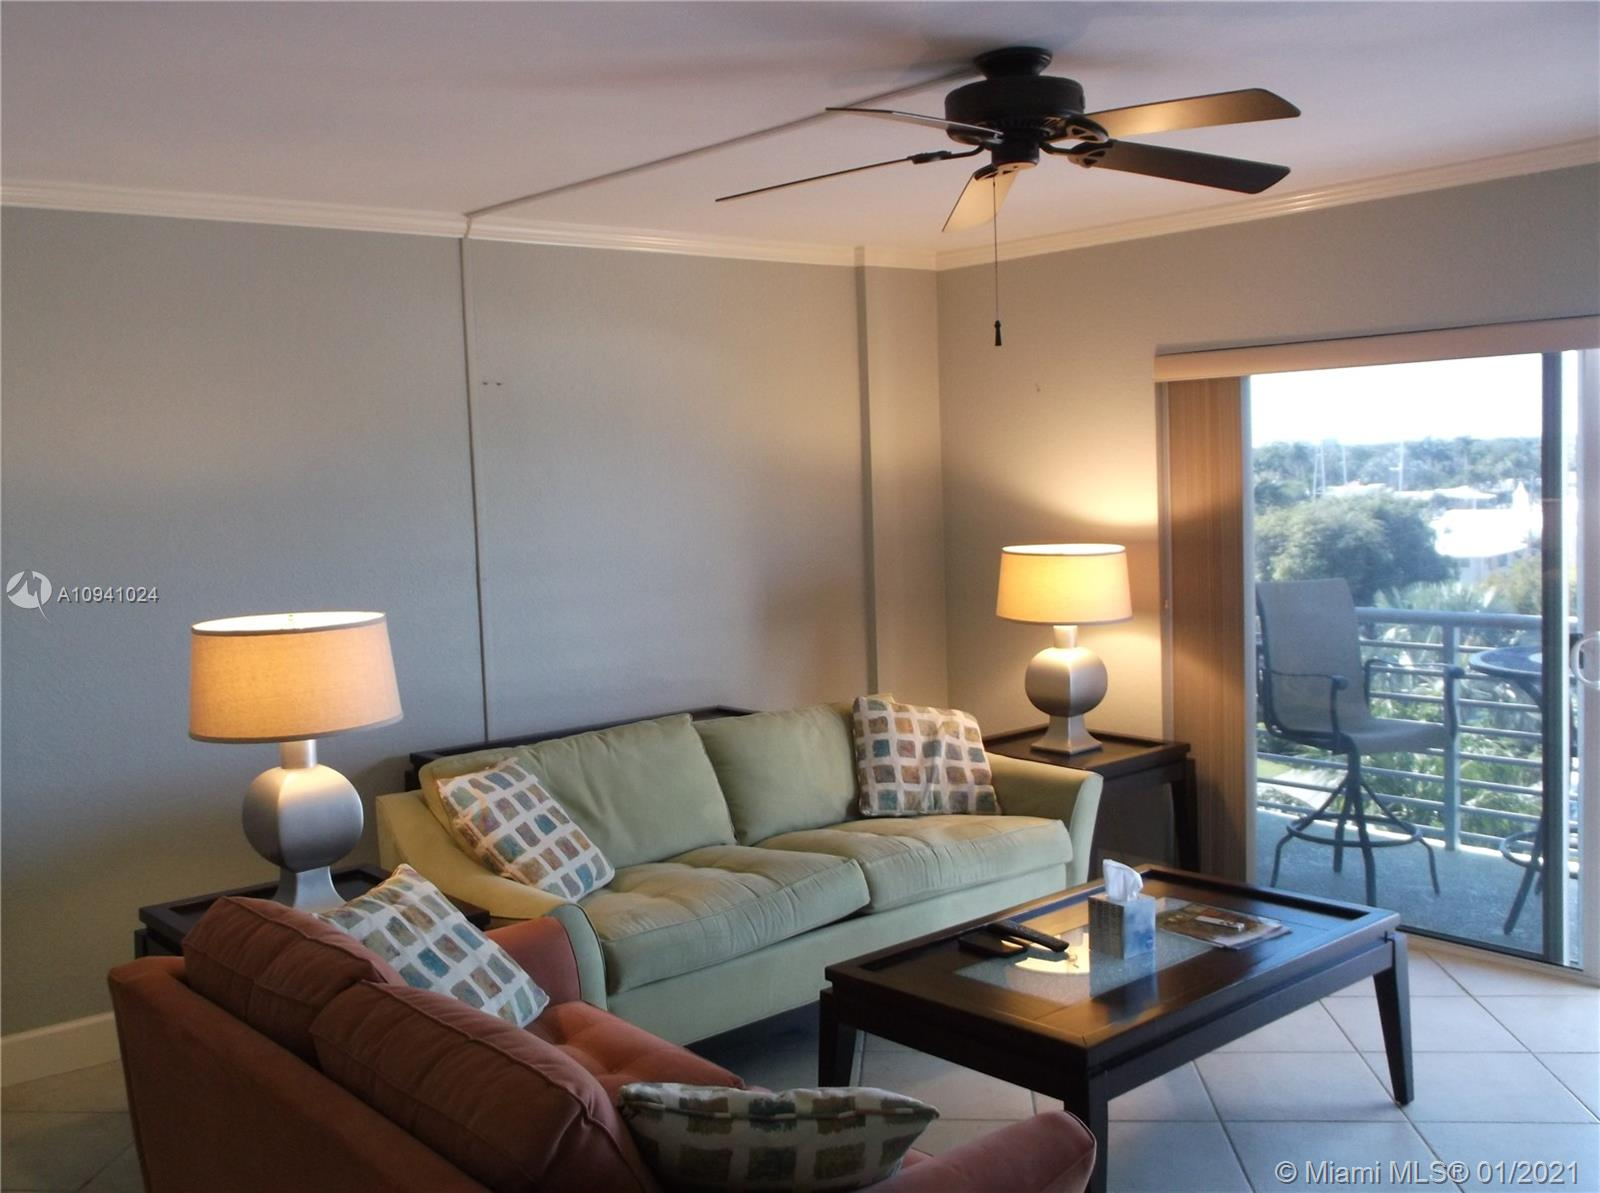 Bright corner unit with clear city views of downtown and beyond. Building just finished major upgrades to exterior and amenities, assessments for which are paid. This 1 bedroom unit has west facing windows and patio for great sunset vistas. All impact windows and sliding door.  Kitchen features all stainless steel appliances and granite counters. Bedroom has large walk-in closet. Amenities include pool on the Intracoastal, fully equipped gym, party kitchen, outdoor gas grills. 43 foot dock space available for separate purchase or lease. Laundries every floor. Walk to beach, grocer, shopping and dining in 5-10 mins. Can be rented immediately, 4 month minimum.